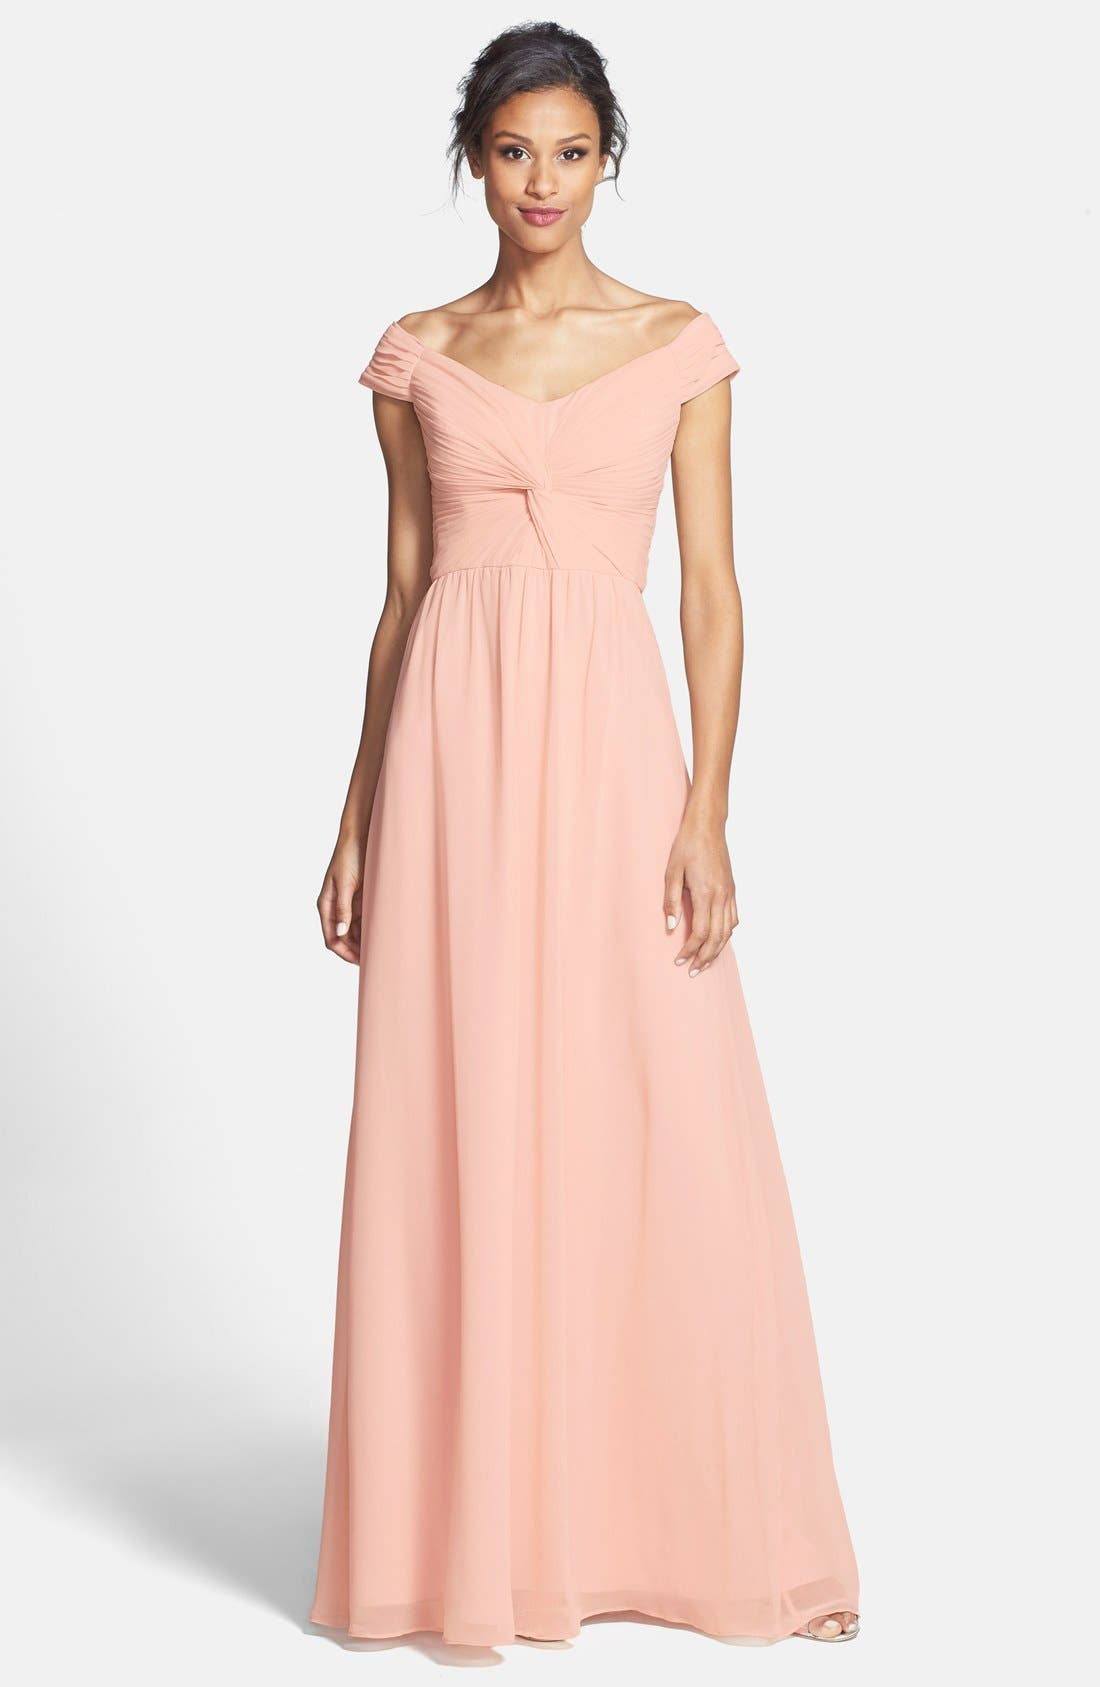 Alternate Image 1 Selected - ERIN erin fetherston 'Clarisse' Off the Shoulder Front Twist Chiffon Gown